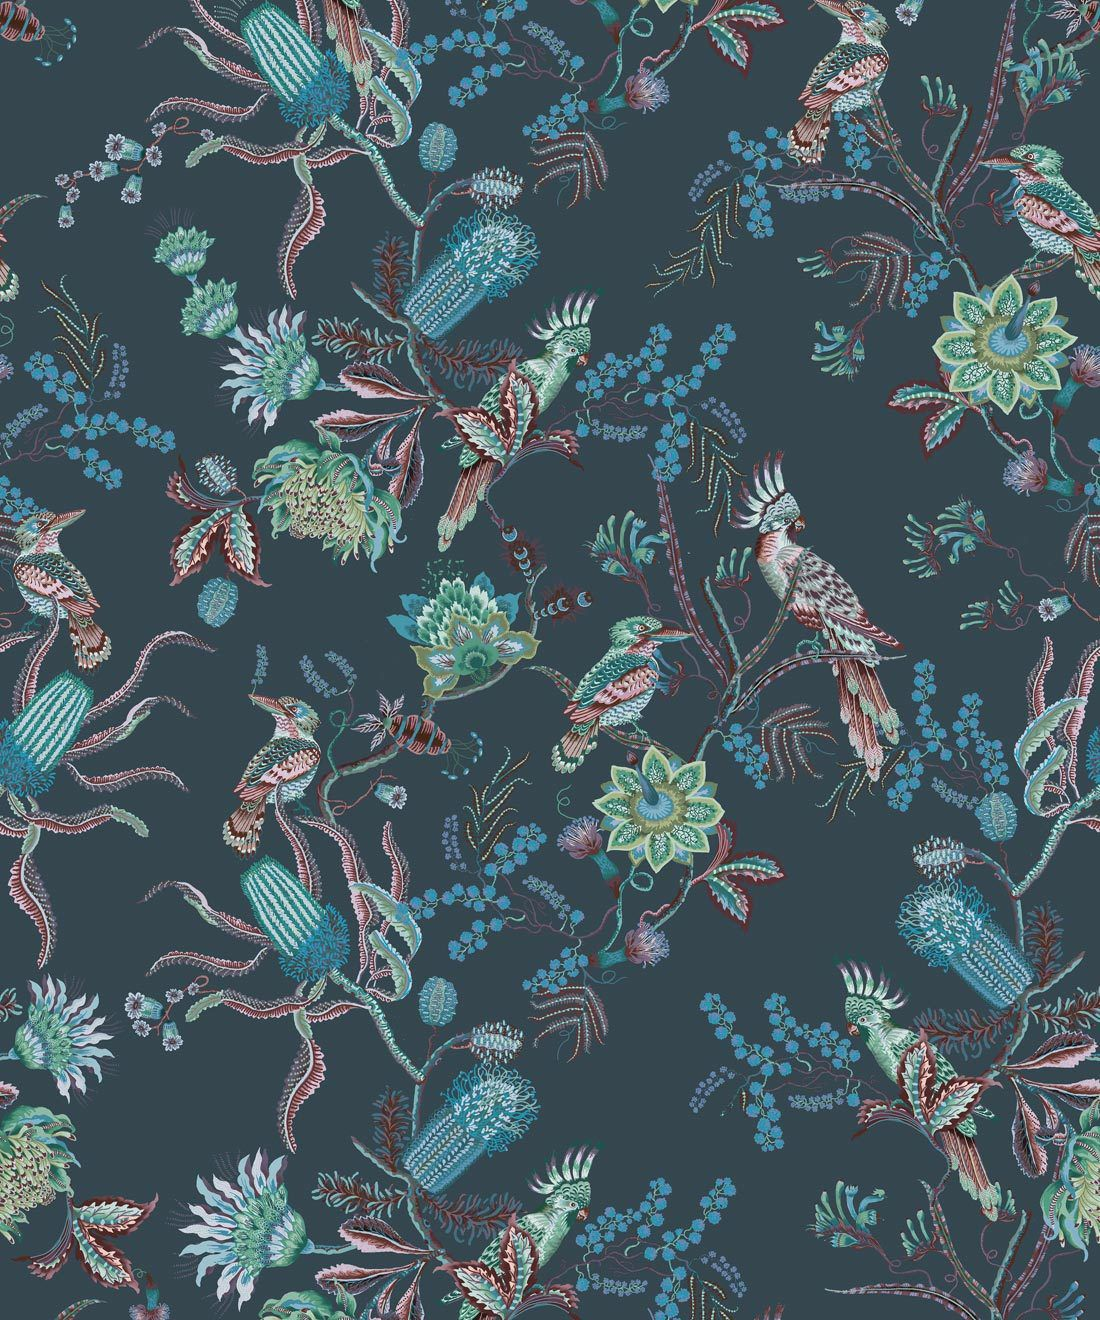 Matilda Wallpaper • Cockatoo, kookaburra • Australian Wallpaper • Milton & King Europe • Deep Blue Swatch